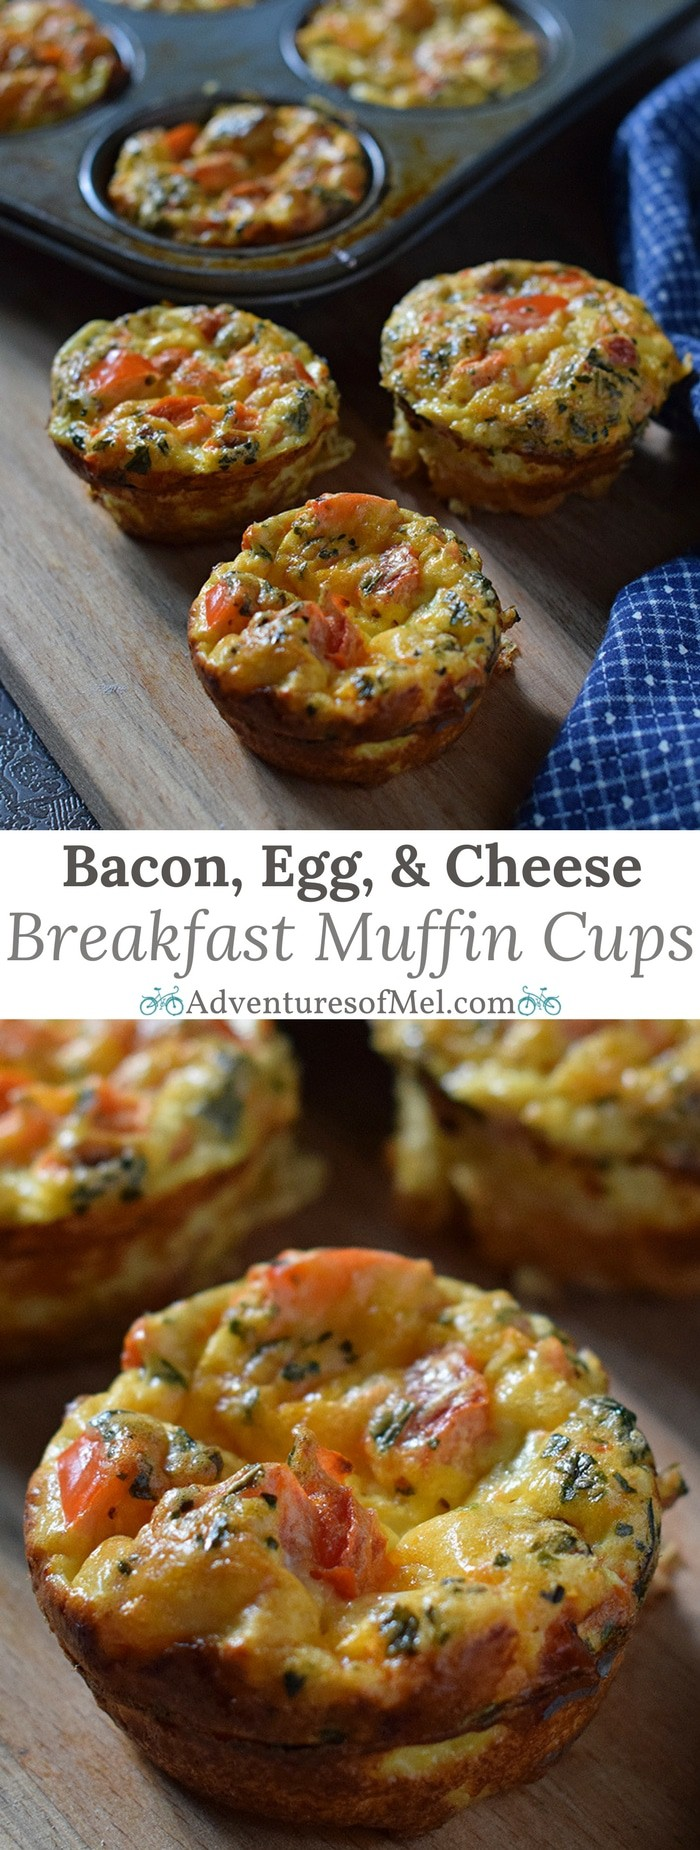 Bacon, Egg, and Cheese Breakfast Muffin Cups with eggs, bacon, cheese, peppers, tomatoes, and basil. Easy, make ahead, low carb breakfast idea!